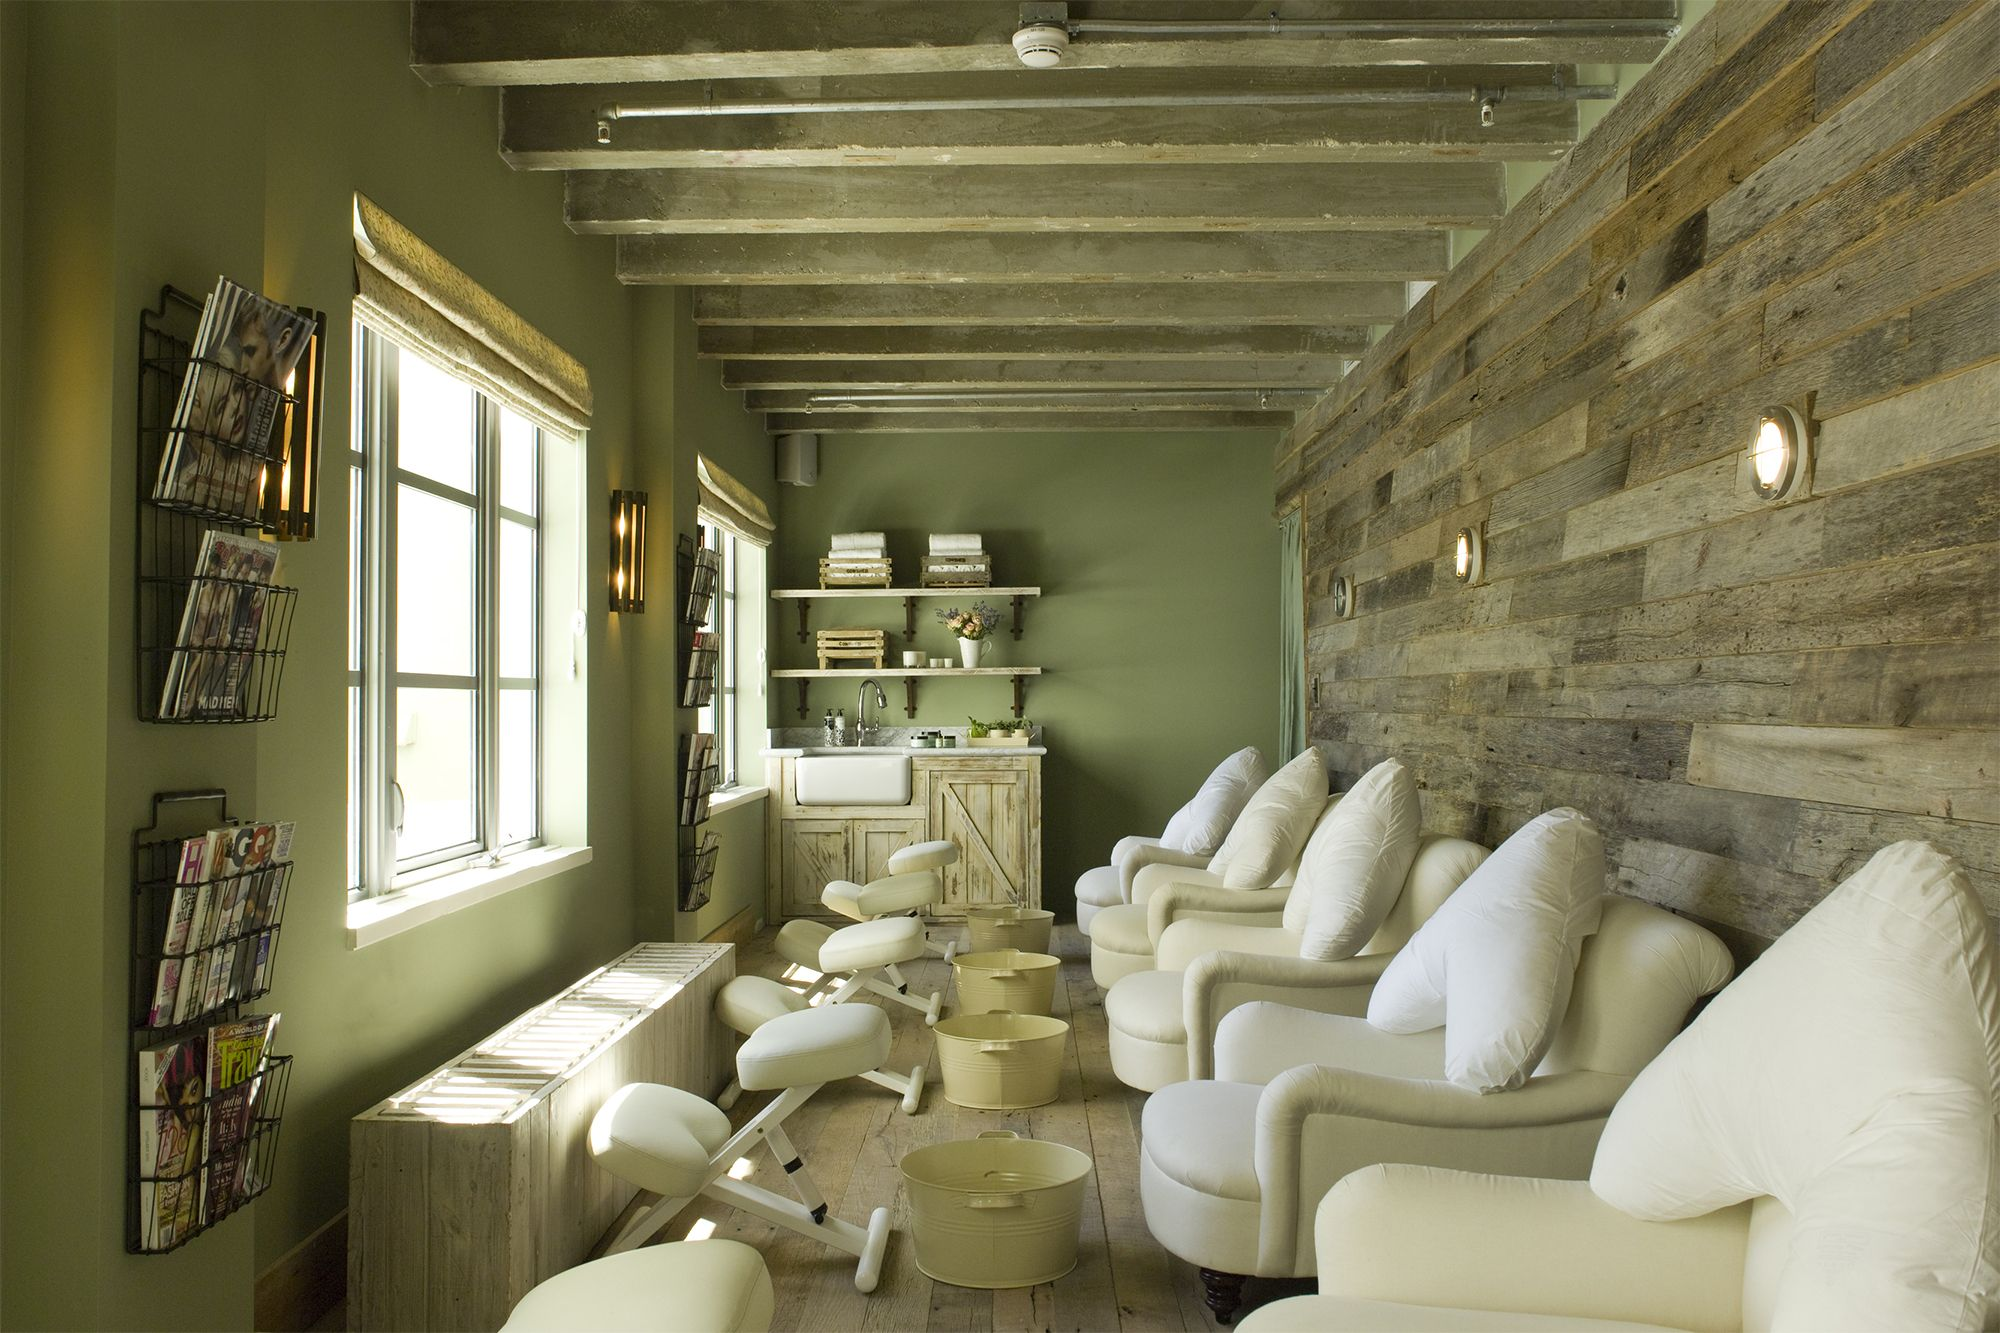 Cowshed Spa Commercial Interior Design Martin Brudnizki Soho Beach House Commercial Interiors Spa Interior